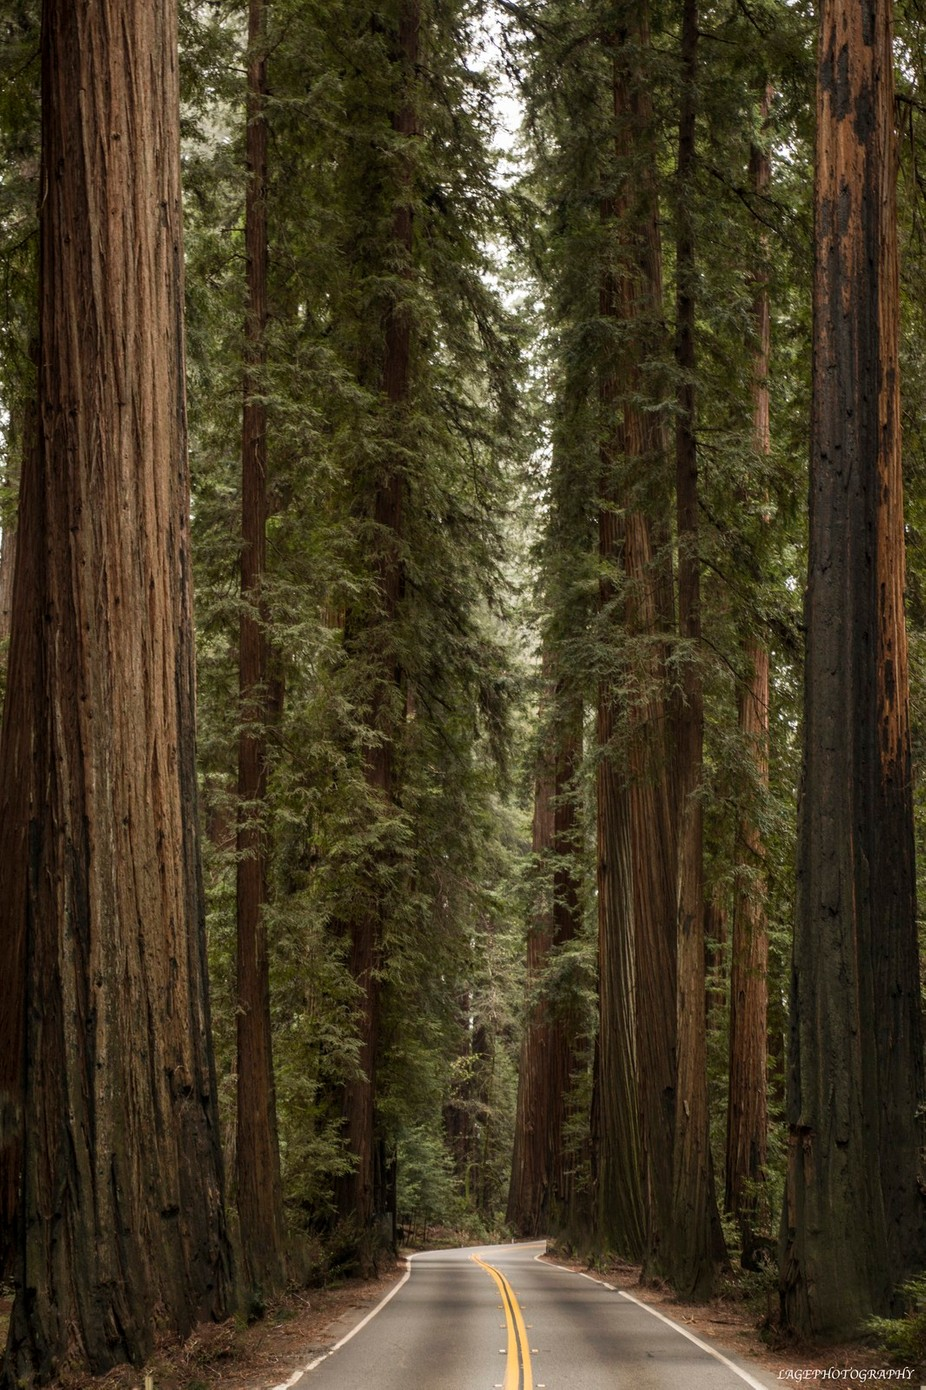 Avenue of the Giants (Calif Redwoods) by LAGE - Large Photo Contest